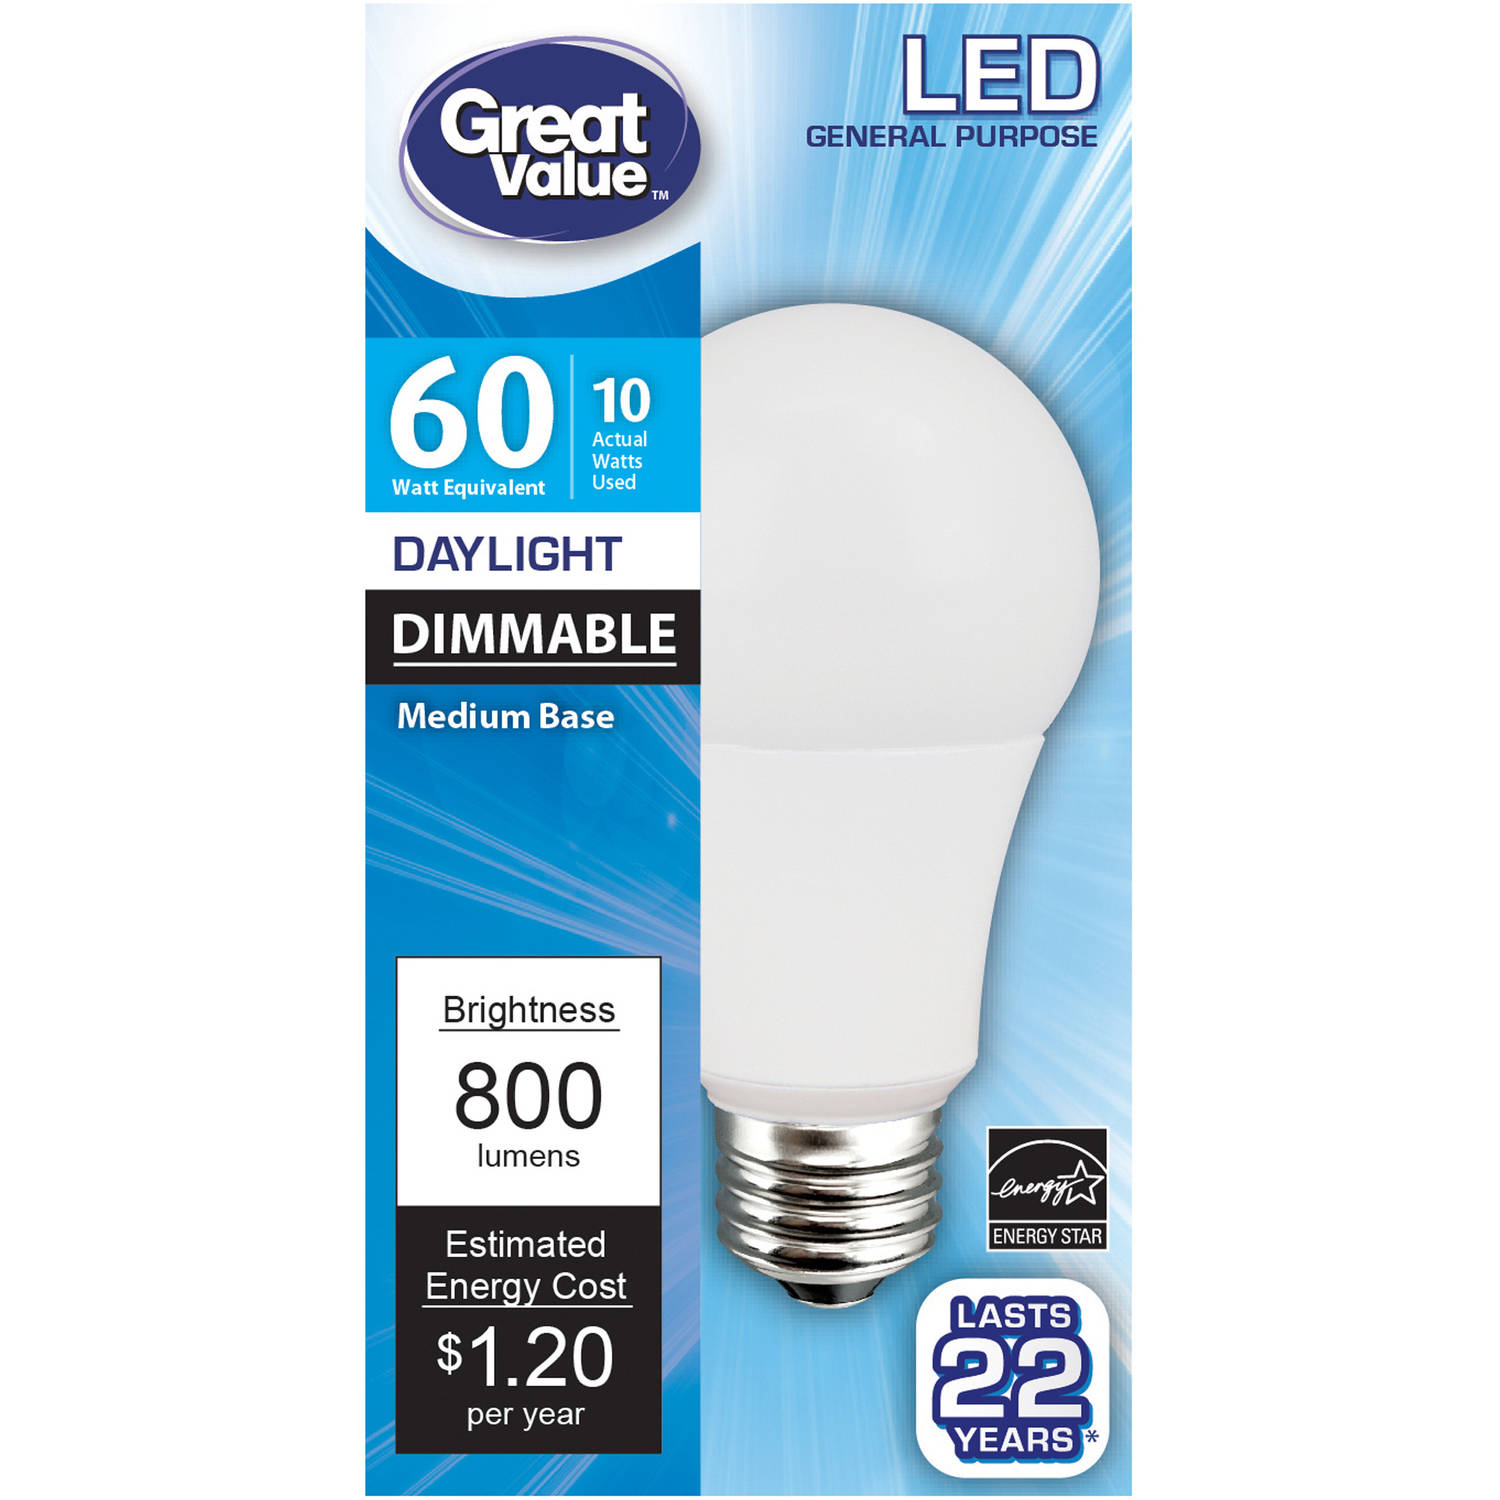 Great Value LED Light Bulb 10W (60W Equivalent) Omni (E26) Dimmable, Daylight